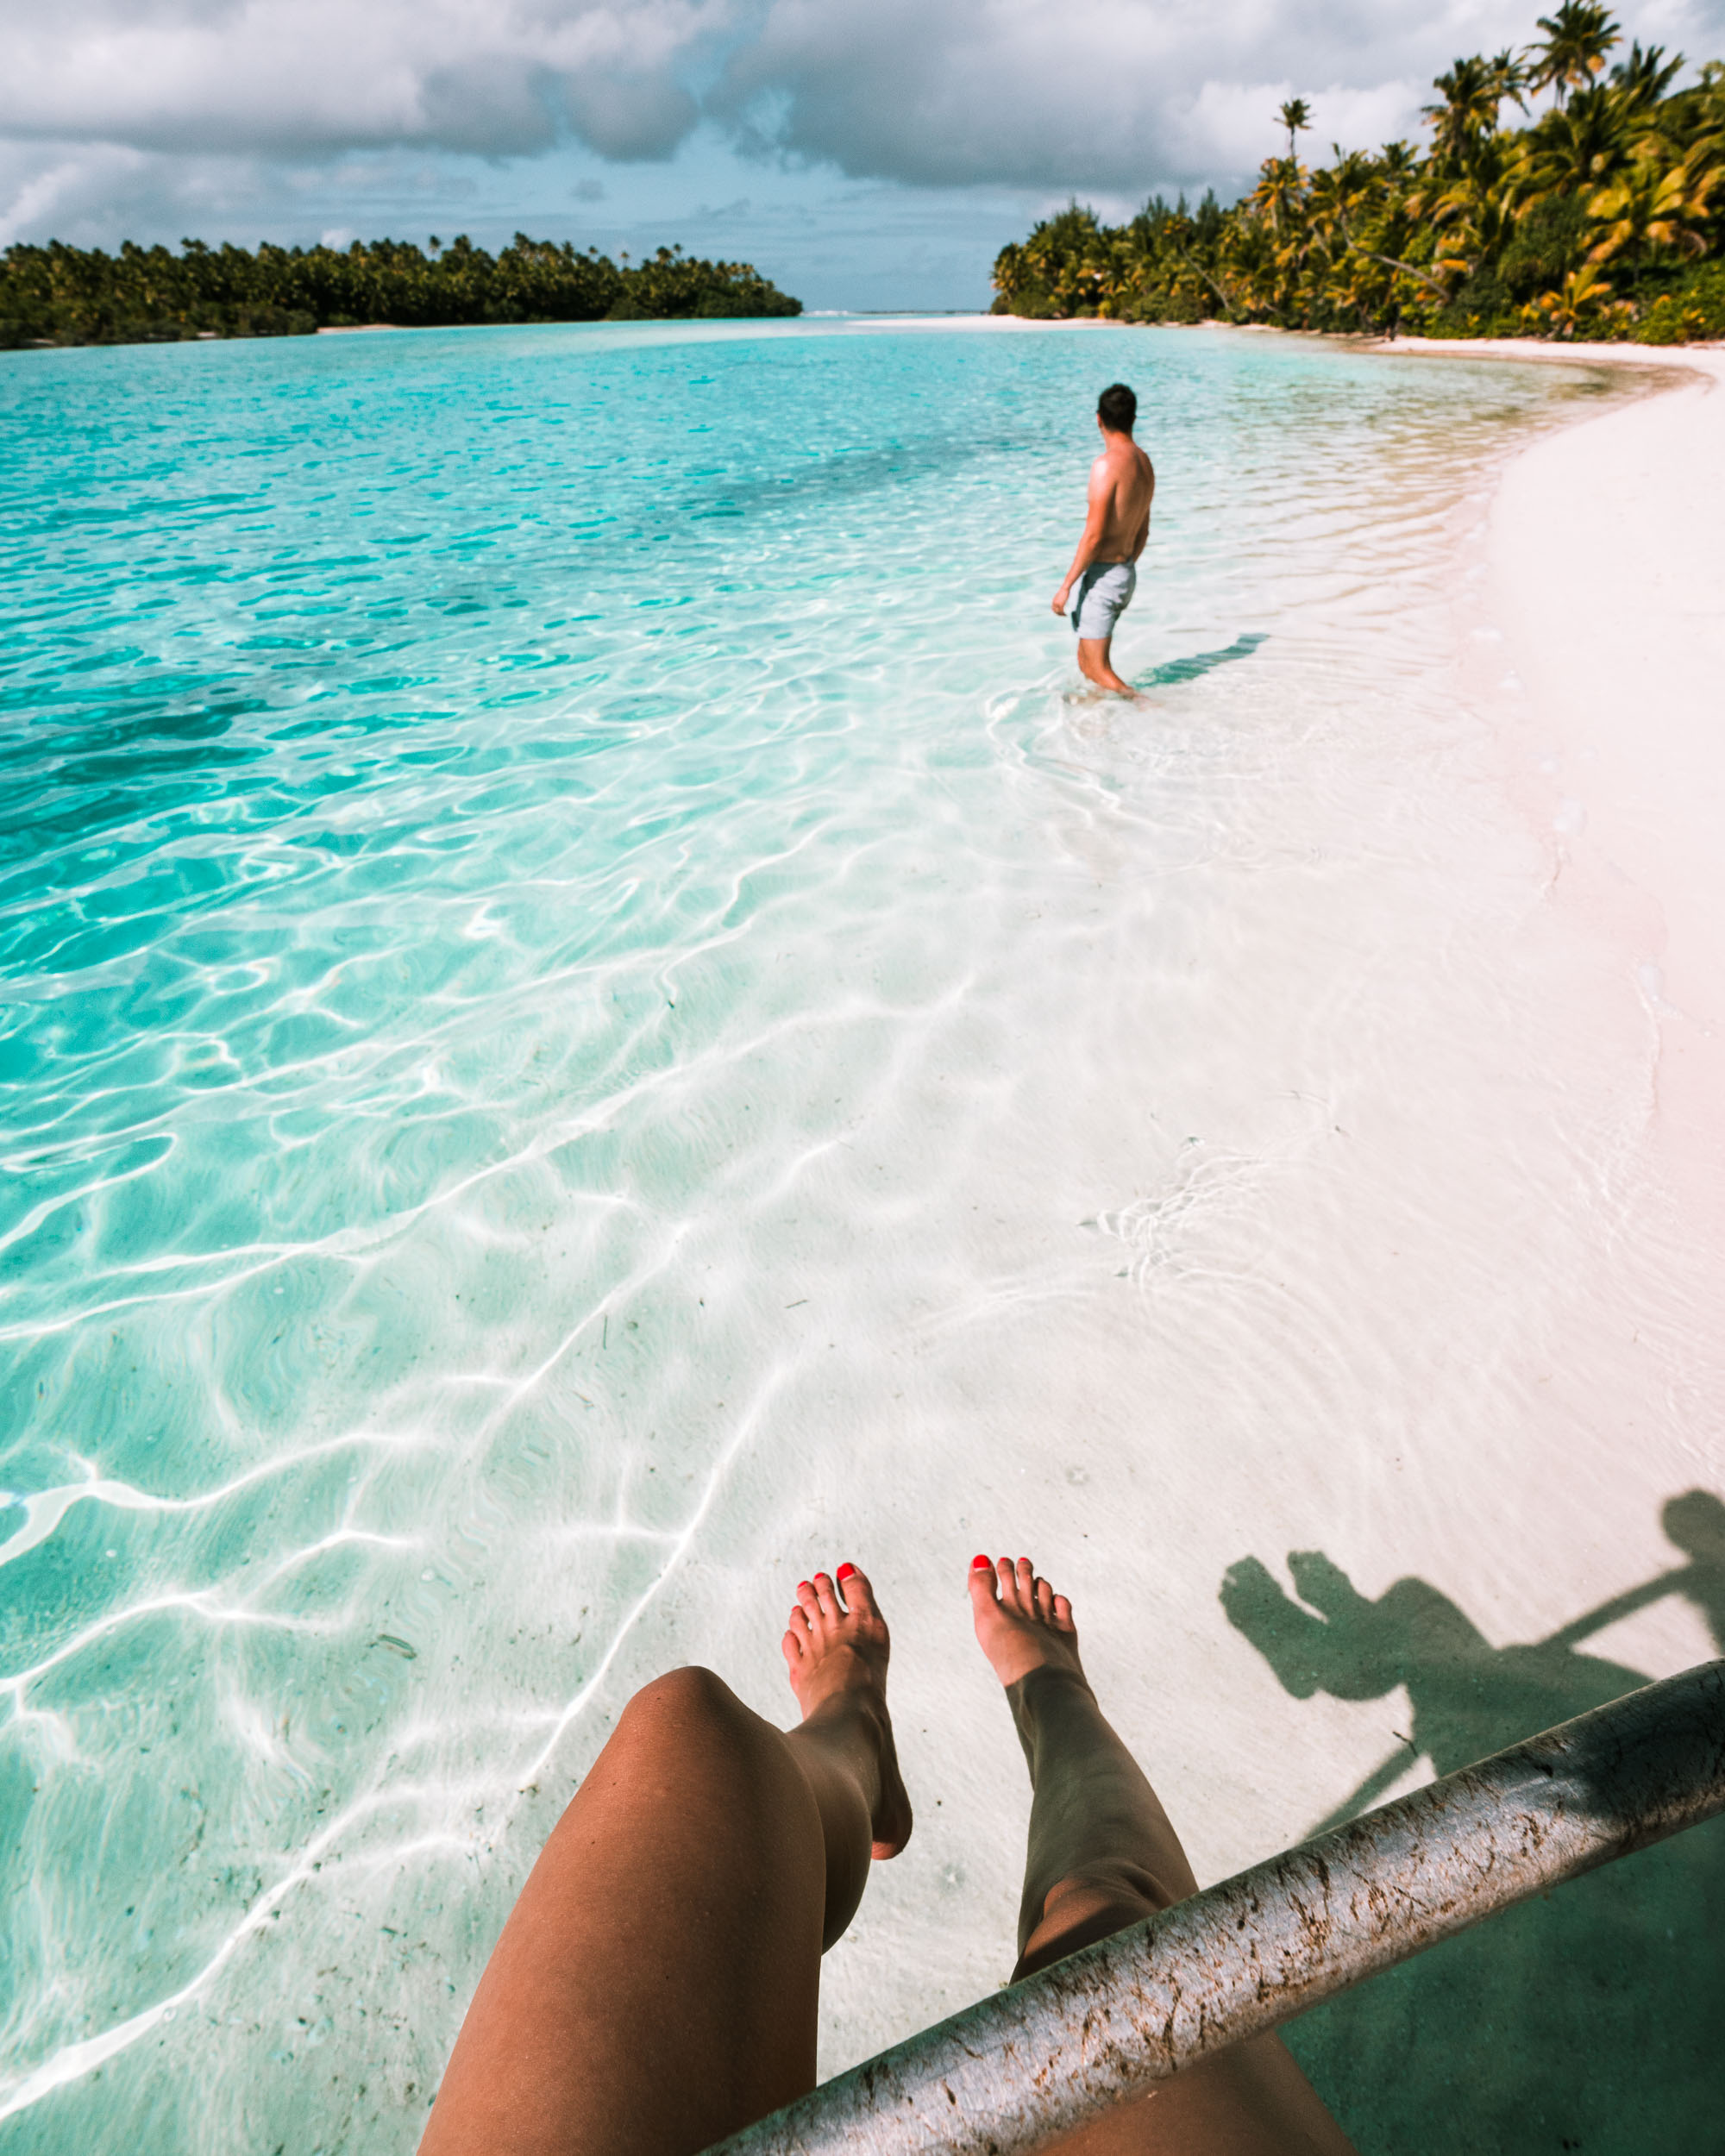 Couple travel bloggers Selena and Jacob Taylor of Find Us Lost at One Foot Island in the Cook Islands